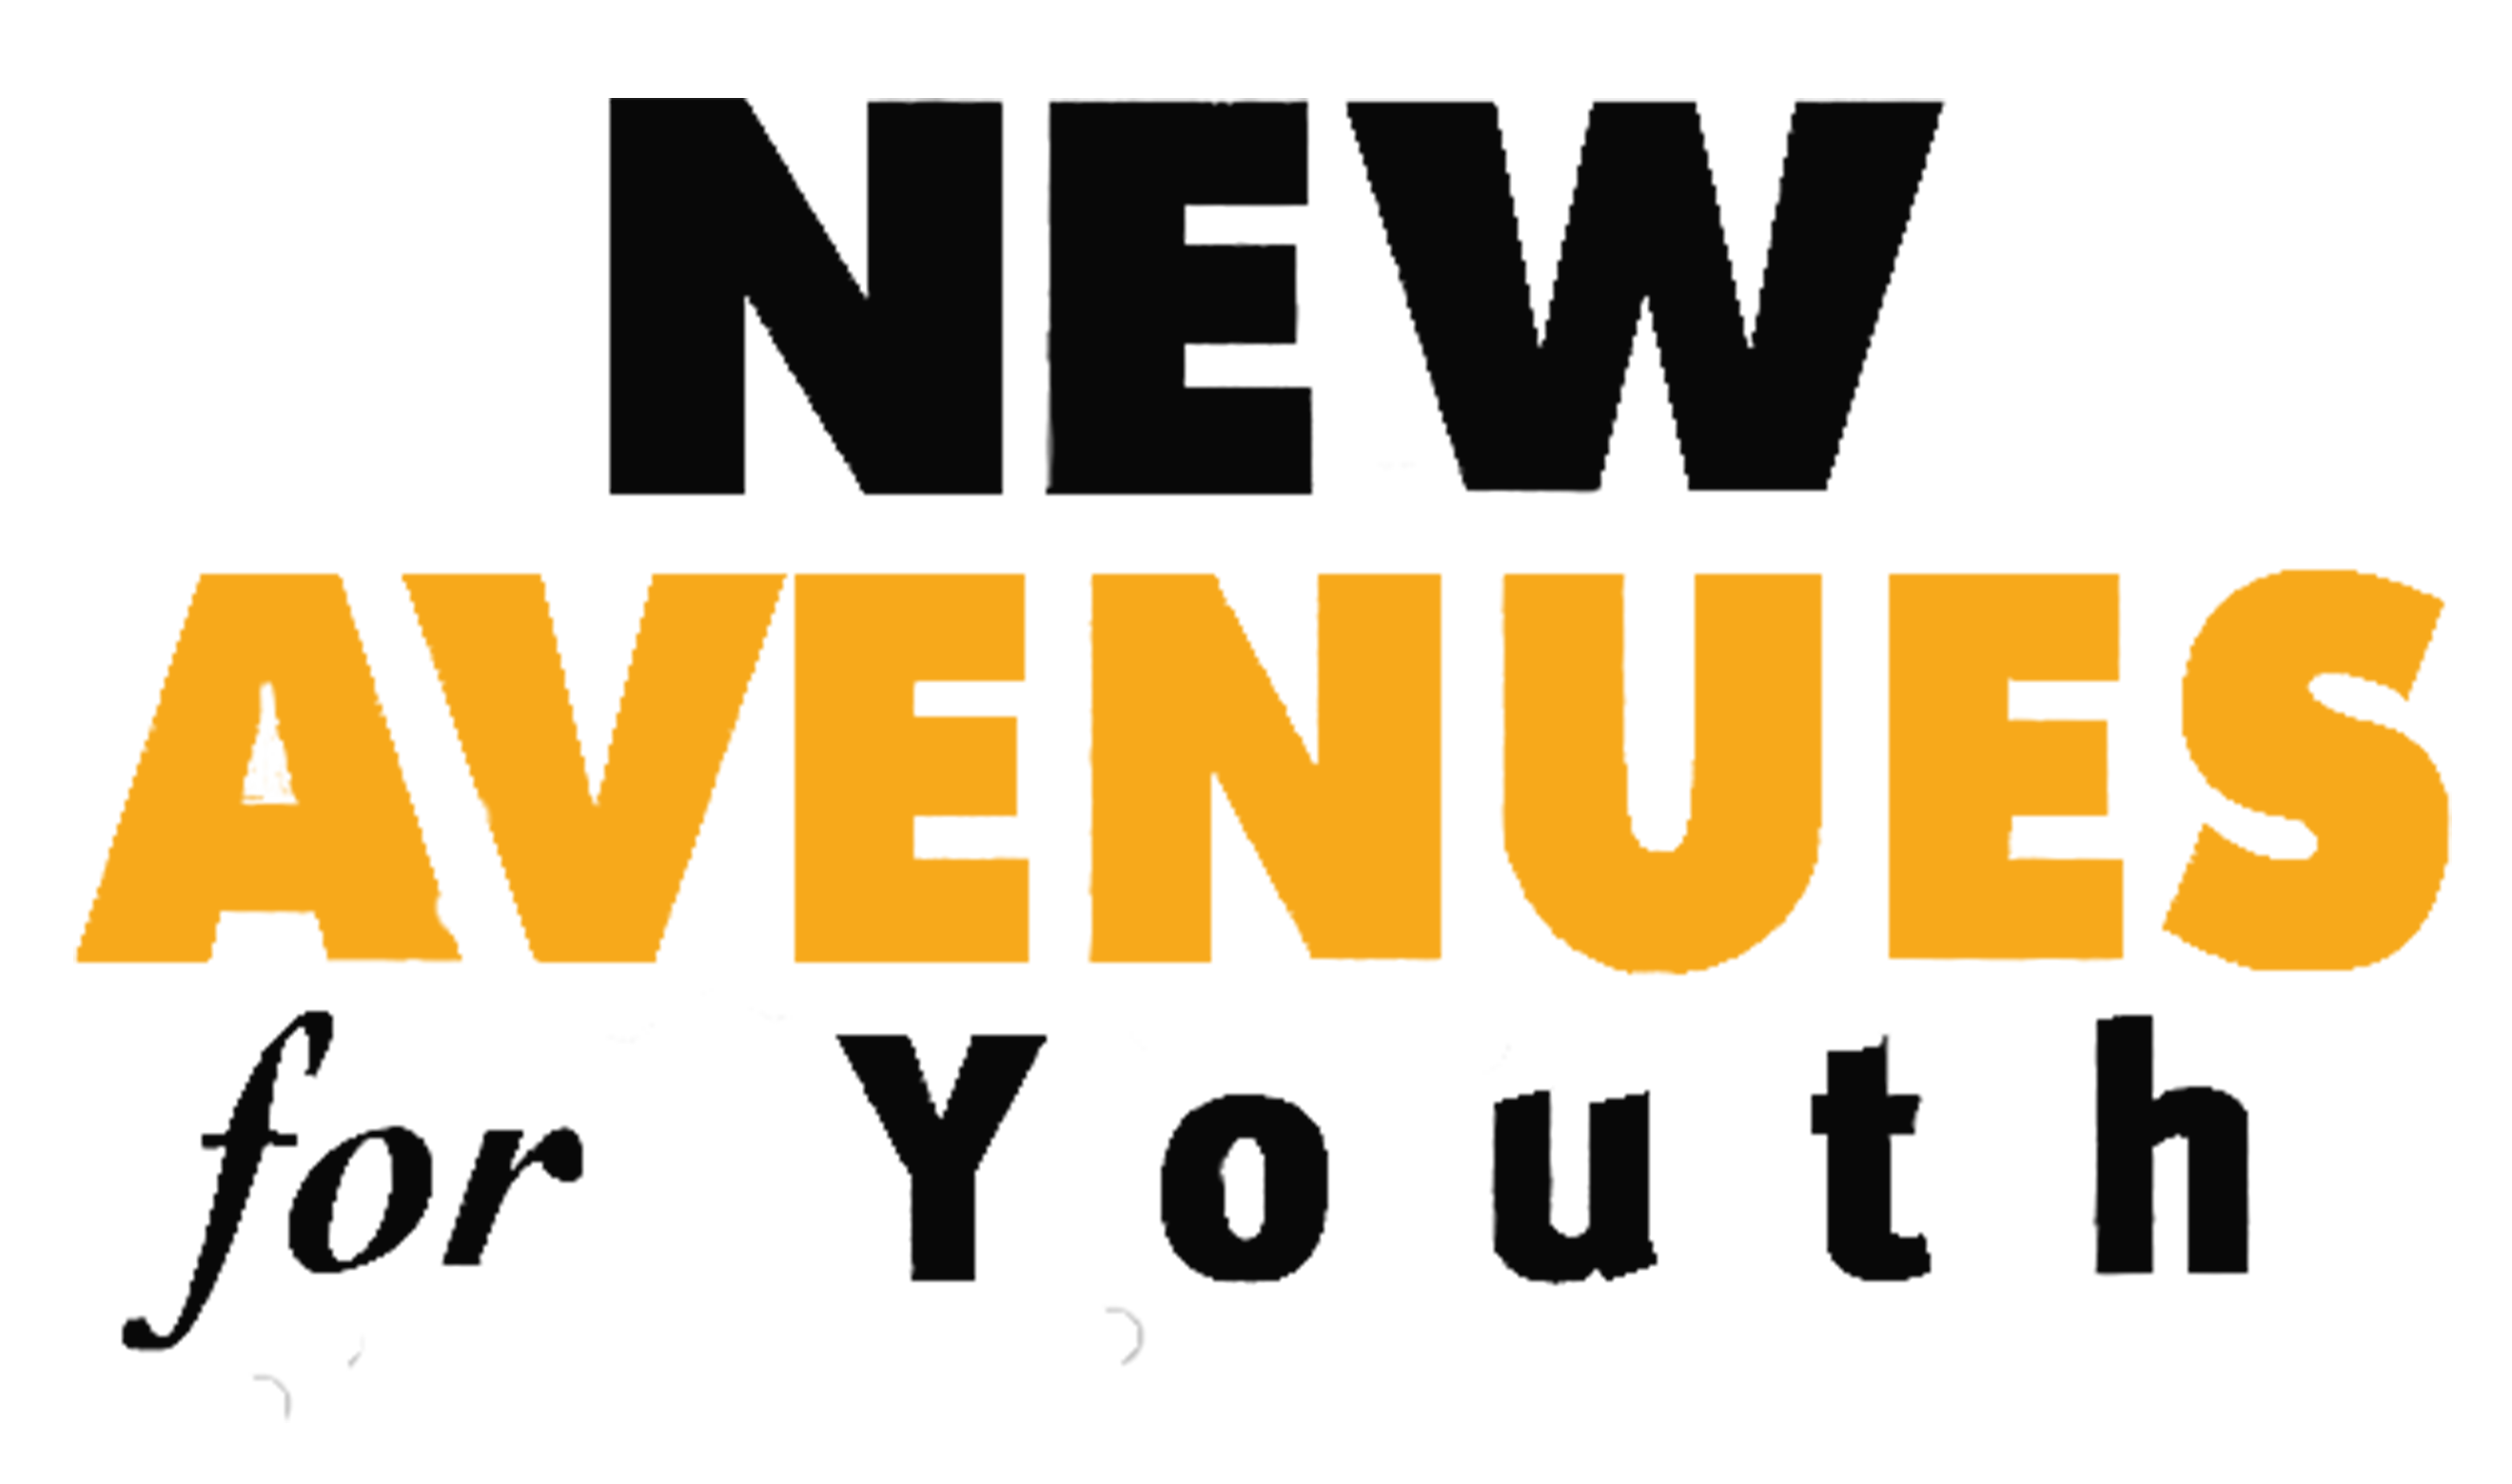 New Avenues for Youth Inc